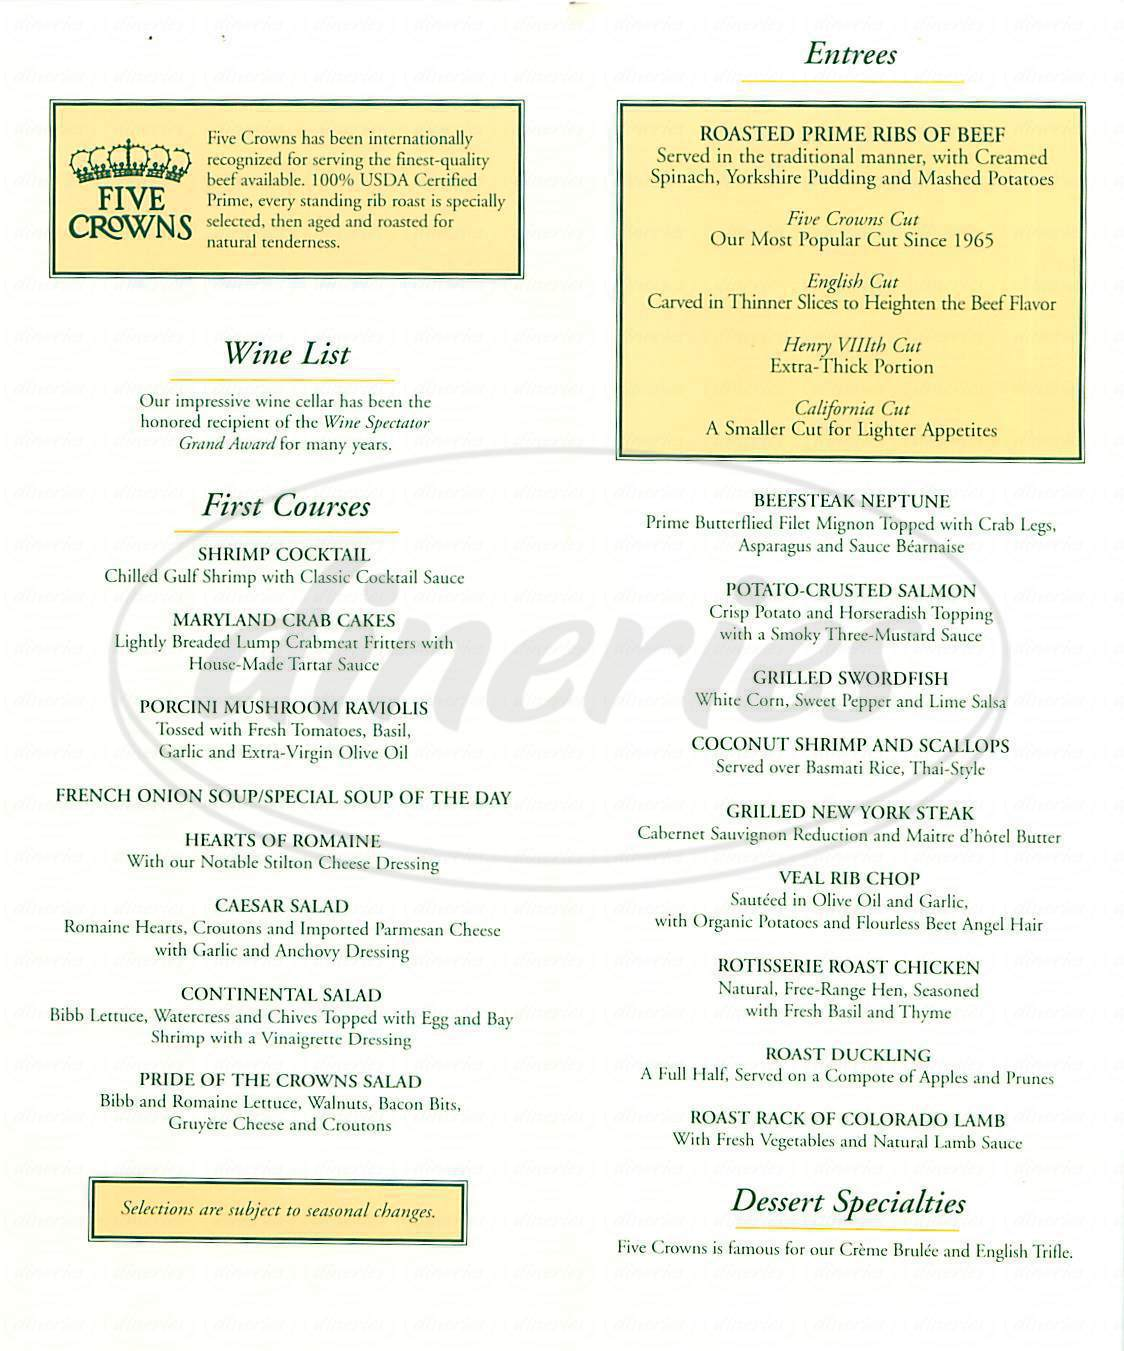 menu for Five Crowns